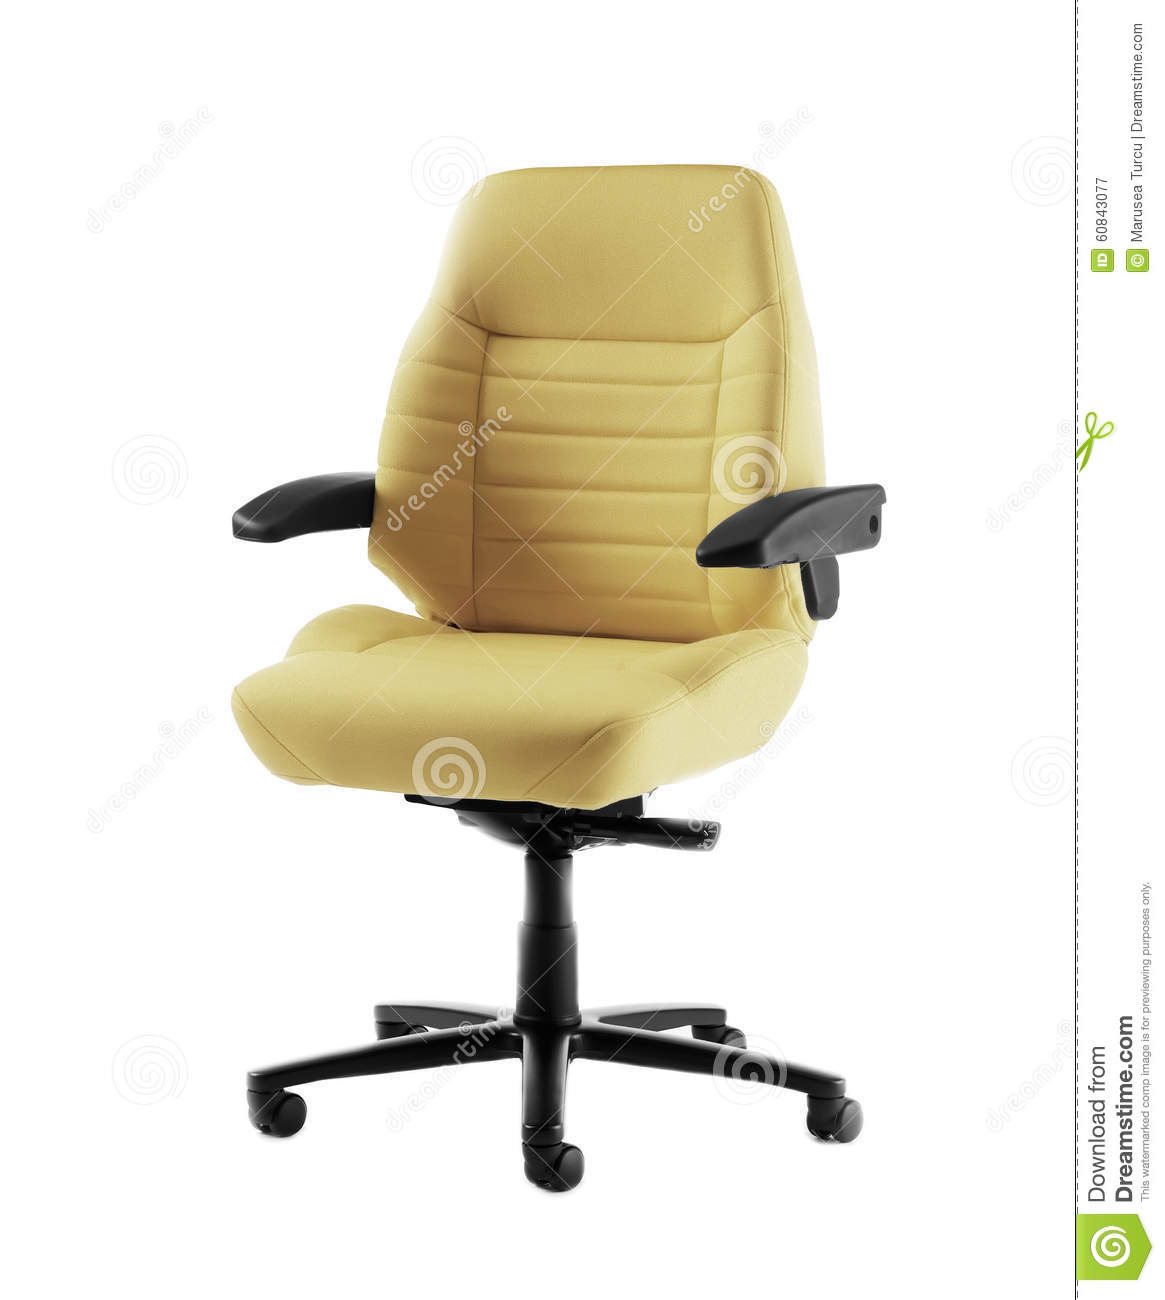 white luxury office chair. Download Luxury Office Chair Stock Image. Image Of Seat, - 60843077 White Luxury